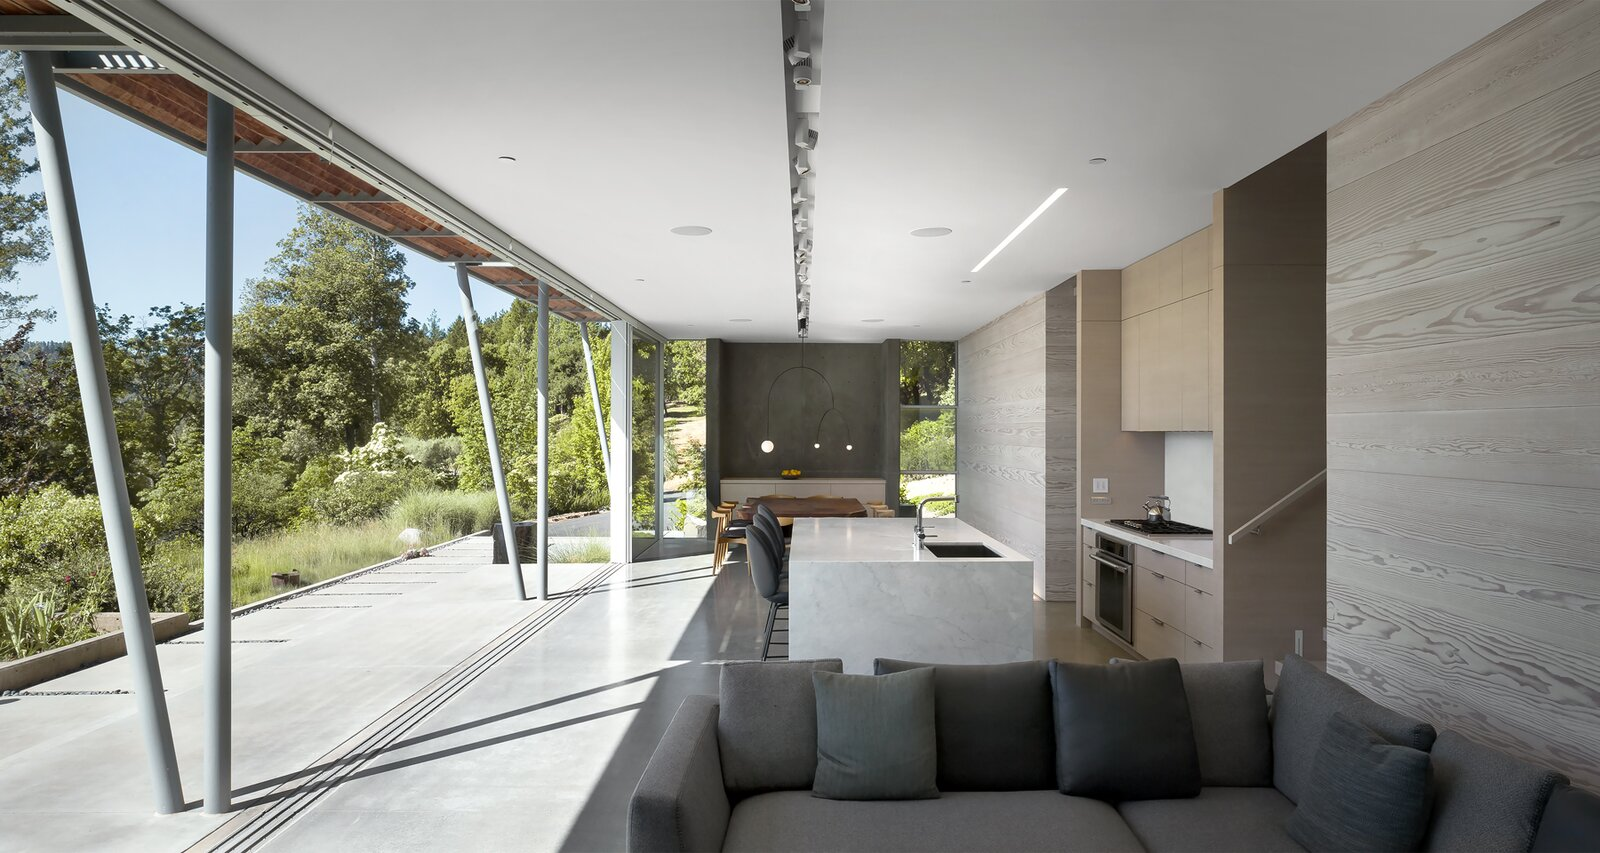 Living Room, Concrete Floor, and Sofa  Photo 9 of 11 in A Minimalist House Stands Out in a Wild Landscape from Sunrise